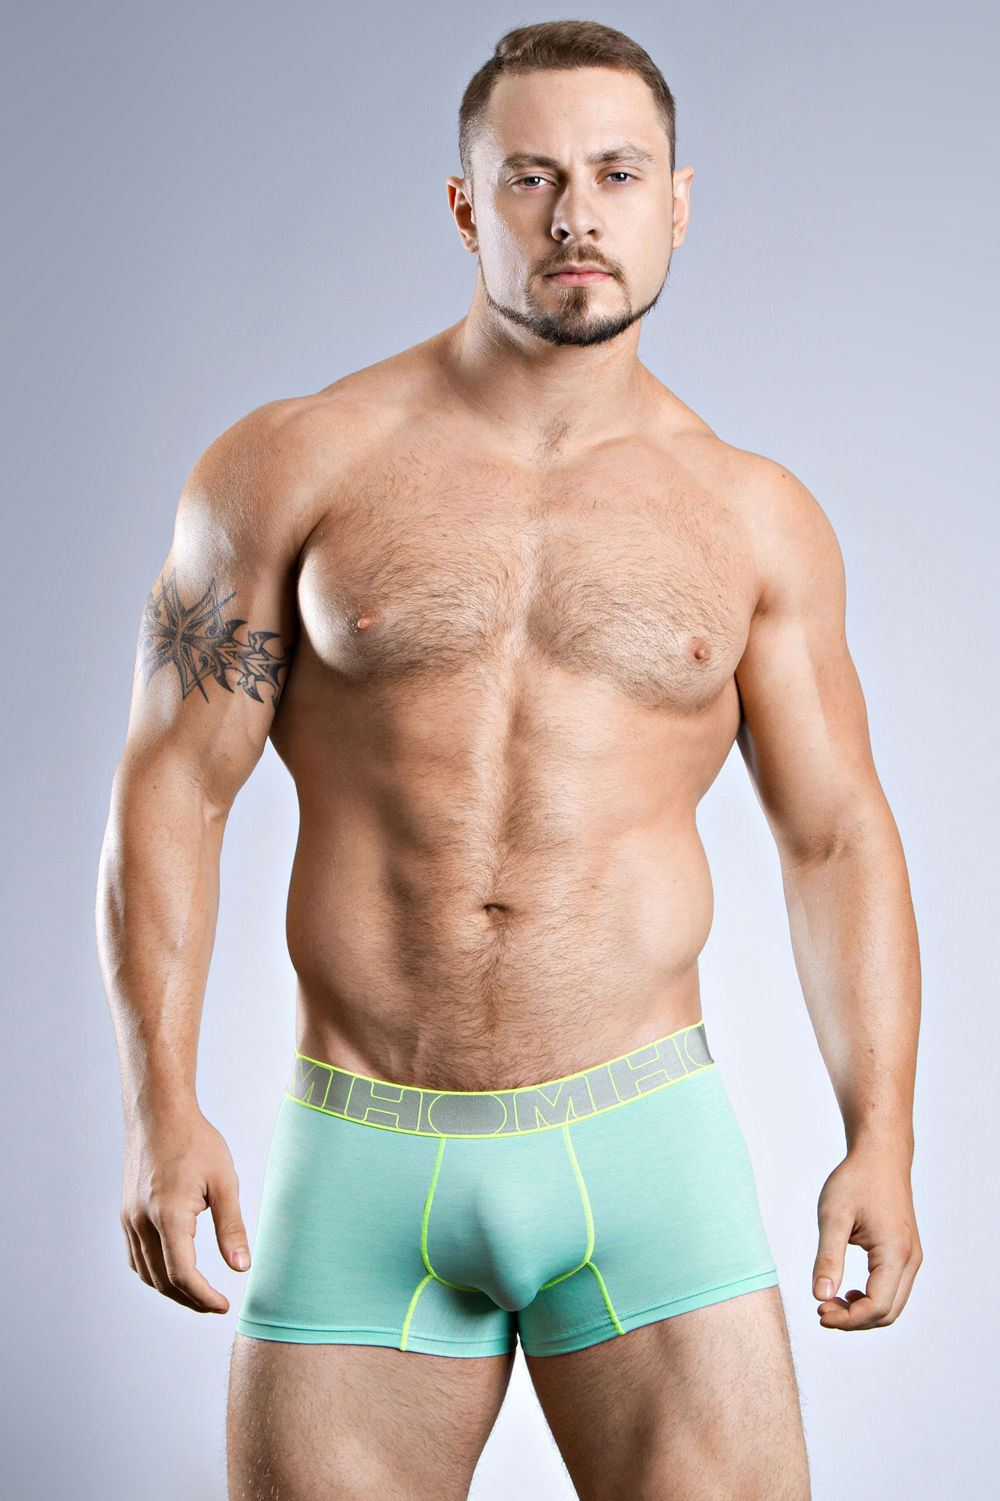 Men's Underwear from fefdinterested.gq Whether you're searching for a pack of classic briefs or a specific color or fit of boxers, fefdinterested.gq offers a wide range of comfortable, classic, and can't-go-wrong underwear for men.